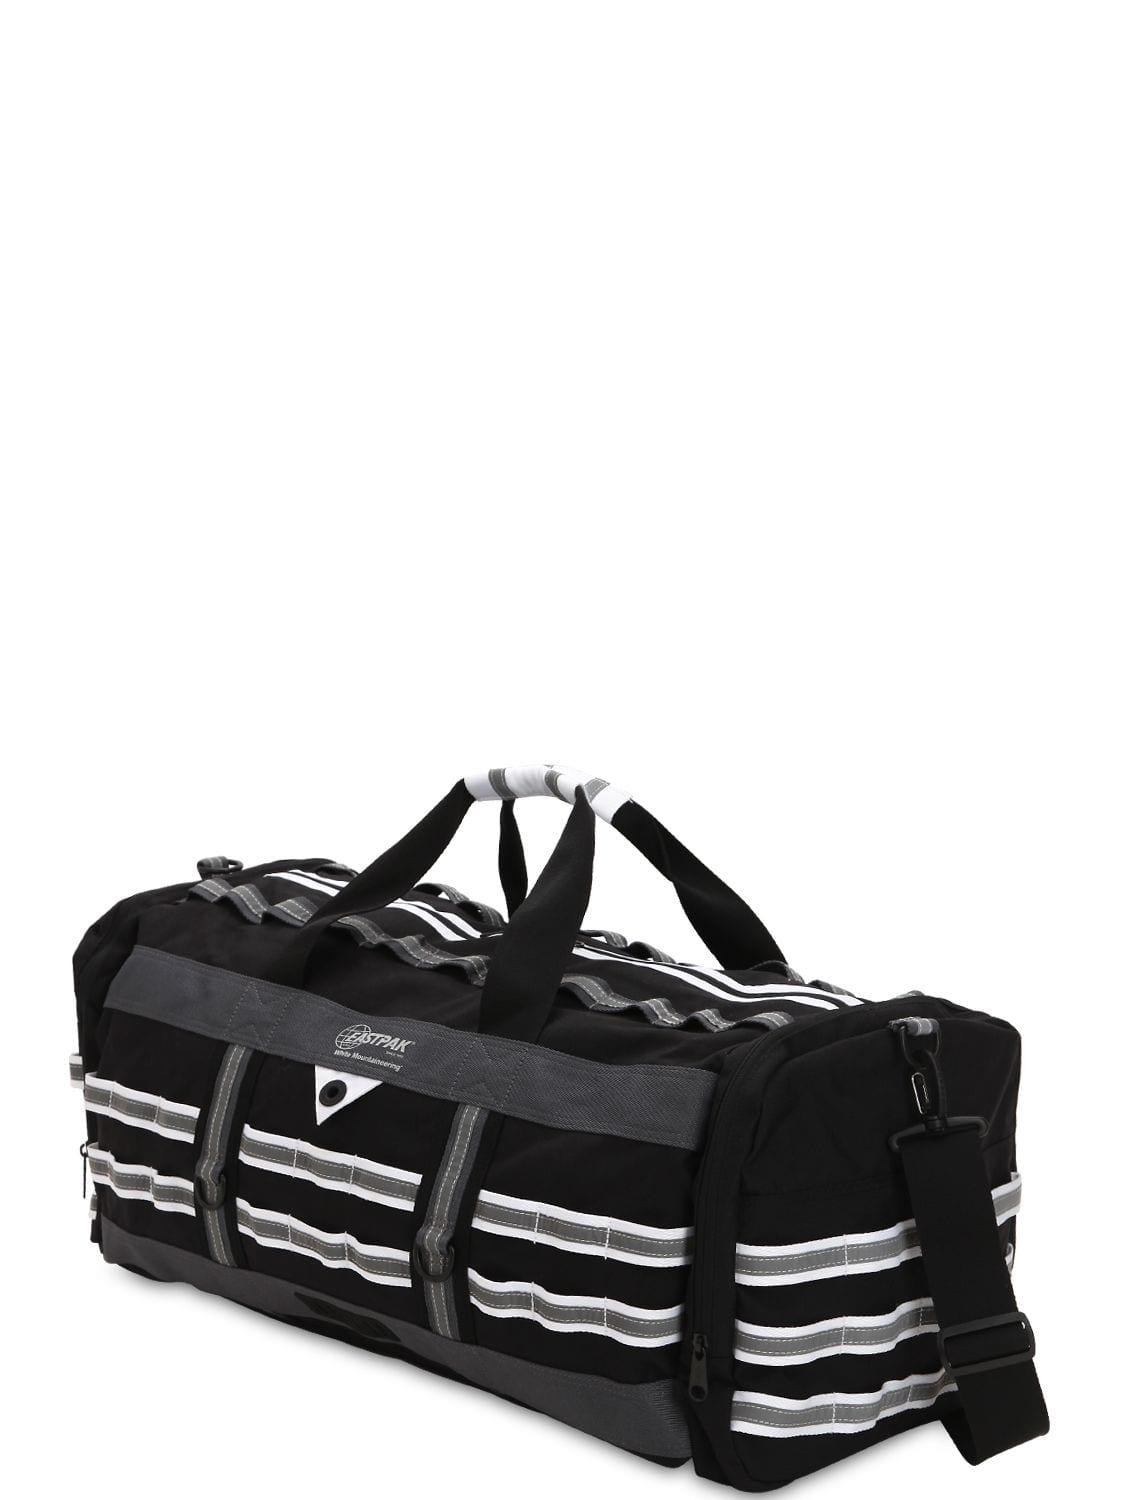 98ab12ffa0 Lyst - Eastpak 46l White Mountaineering Duffle Bag in Black for Men